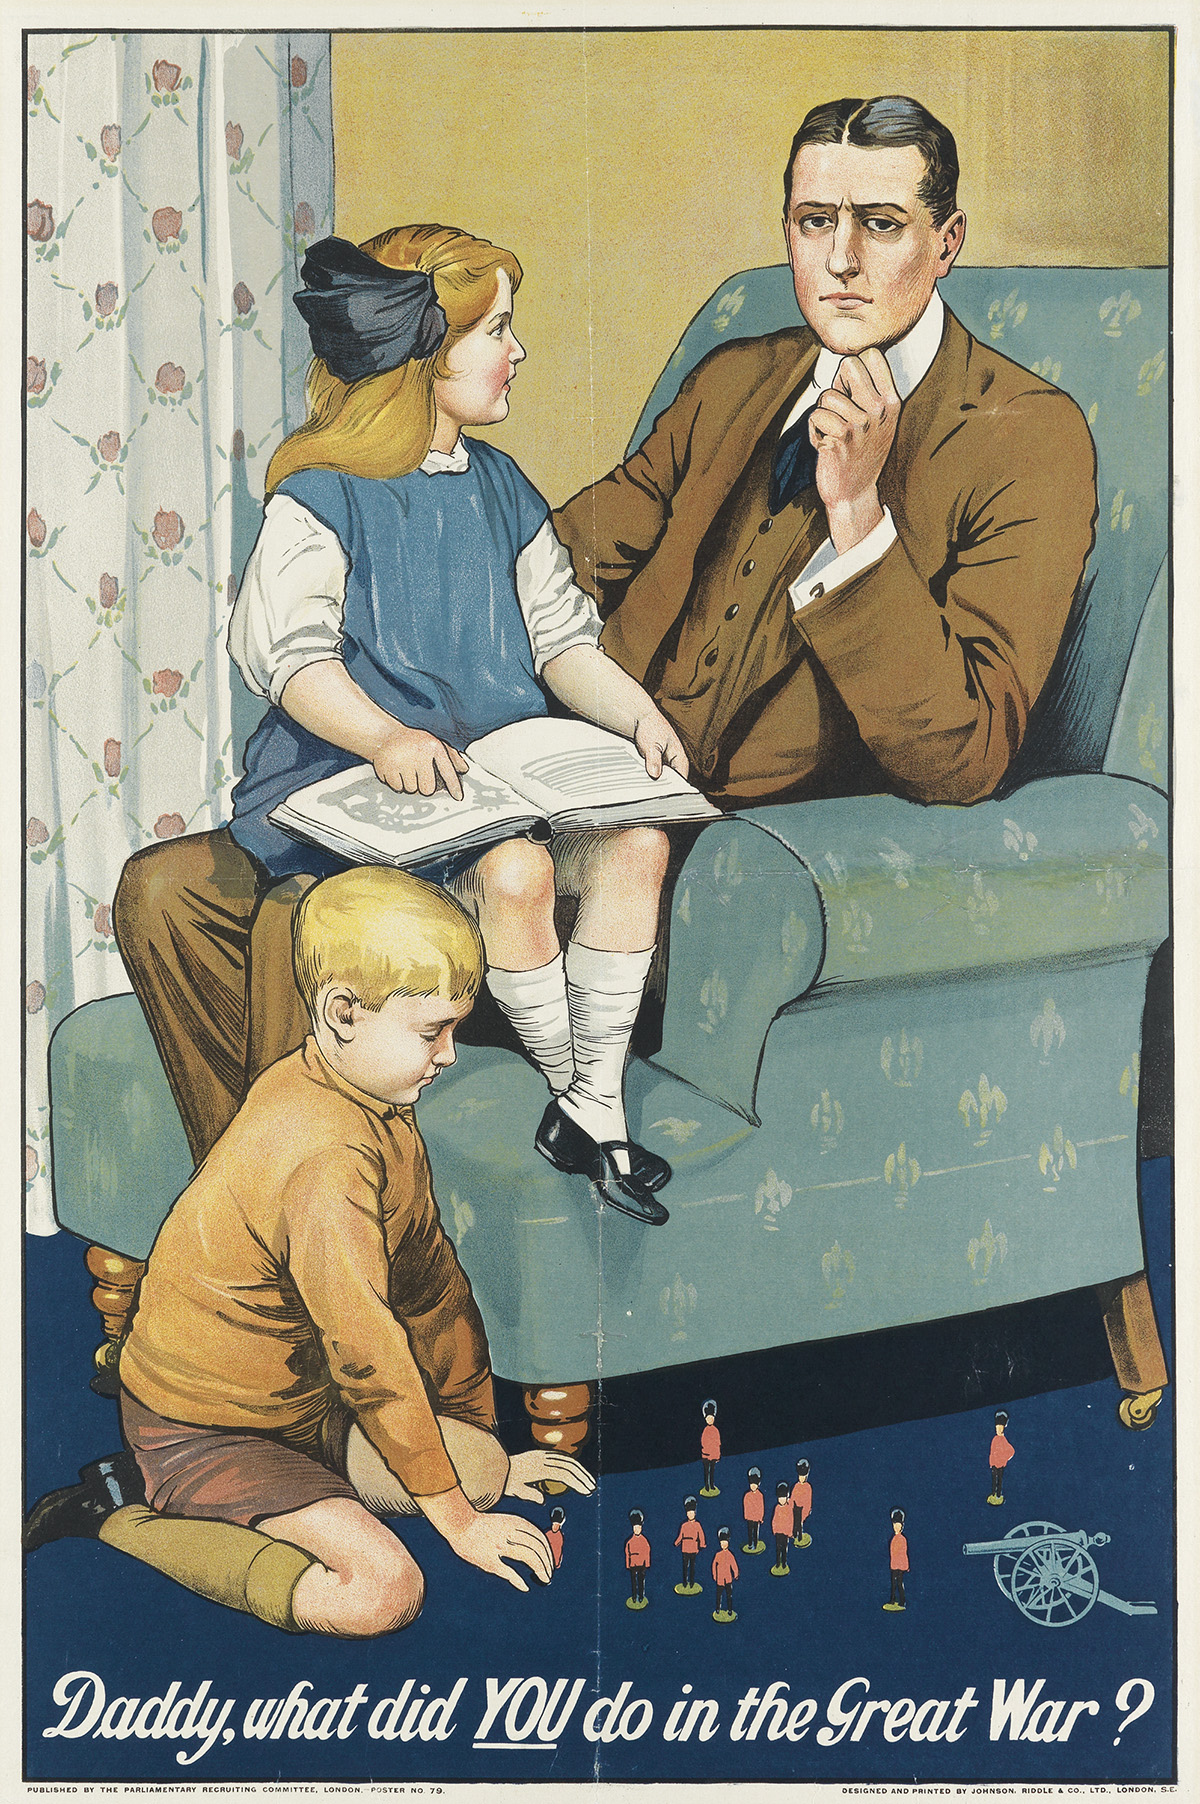 SAVILE-LUMLEY-(1876-1960)-DADDY-WHAT-DID-YOU-DO-IN-THE-GREAT